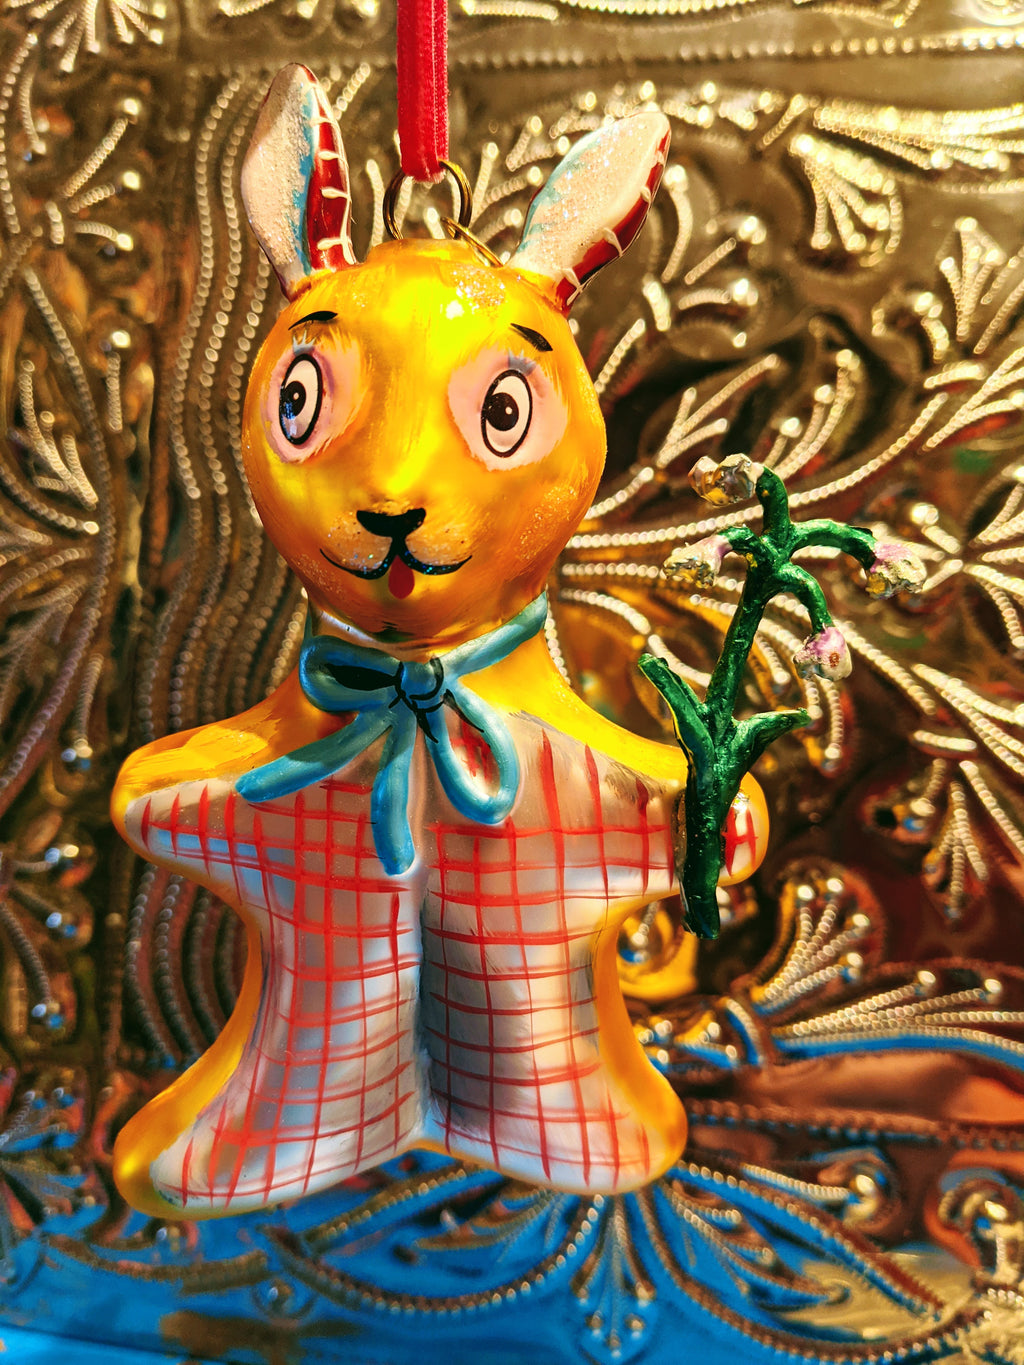 Gorgeous glass bauble with hand finished Nathalie Lete illustrations of a super cute tartan bunny  10cm Approx  Glass, fragile handle with care.